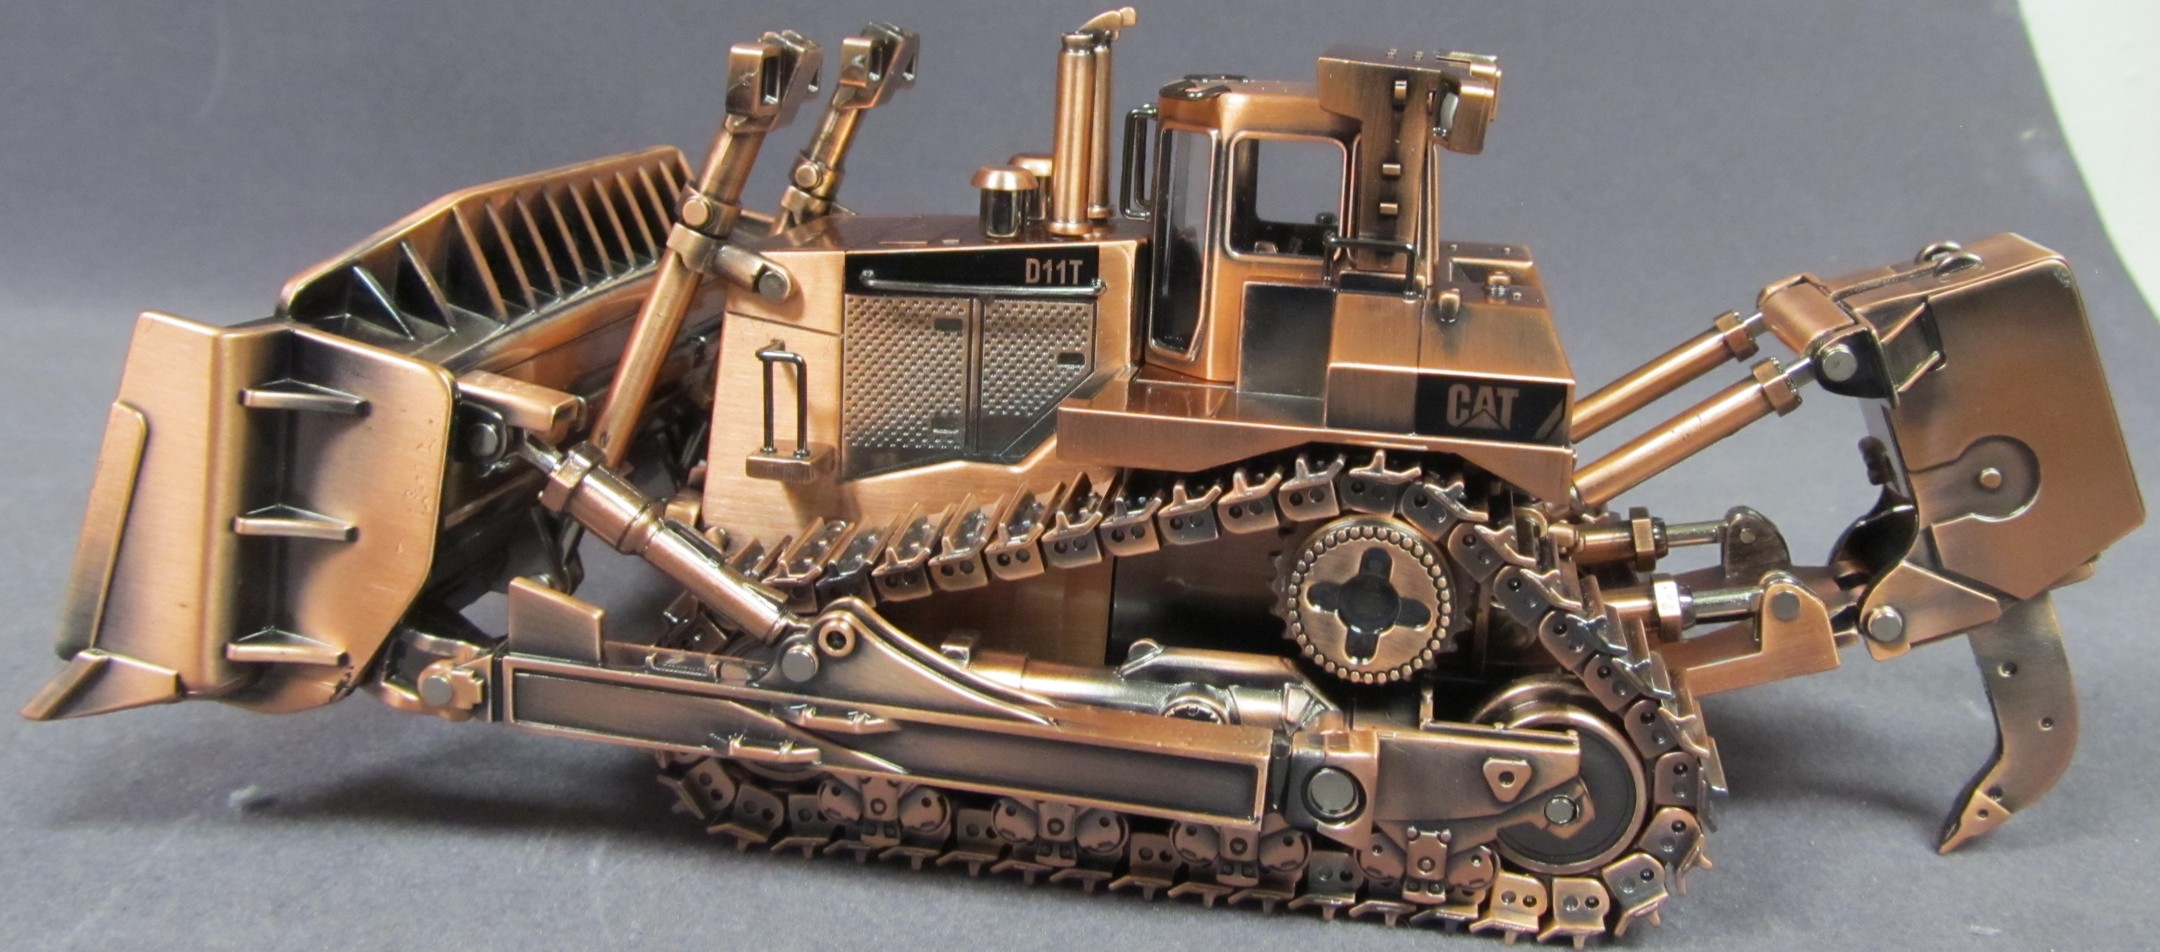 Caterpillar D11T Track-Type Tractor - Commemorative Series